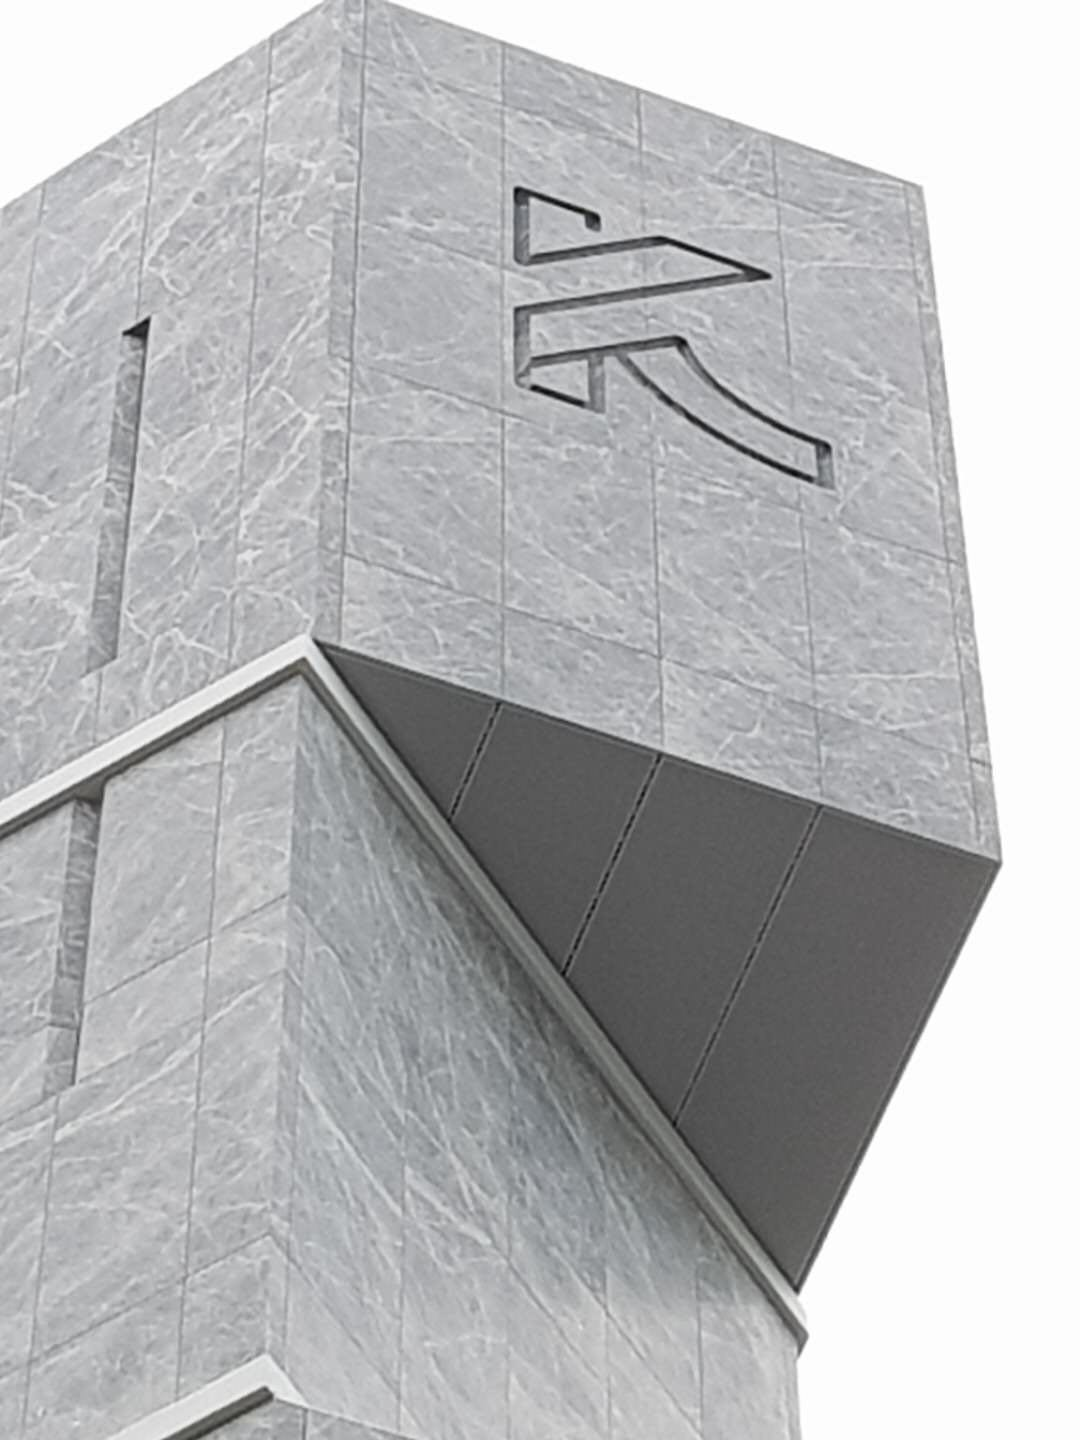 The Khong Guan Office Building, Singapore - brand logo displayed on exterior honeycomb cladding